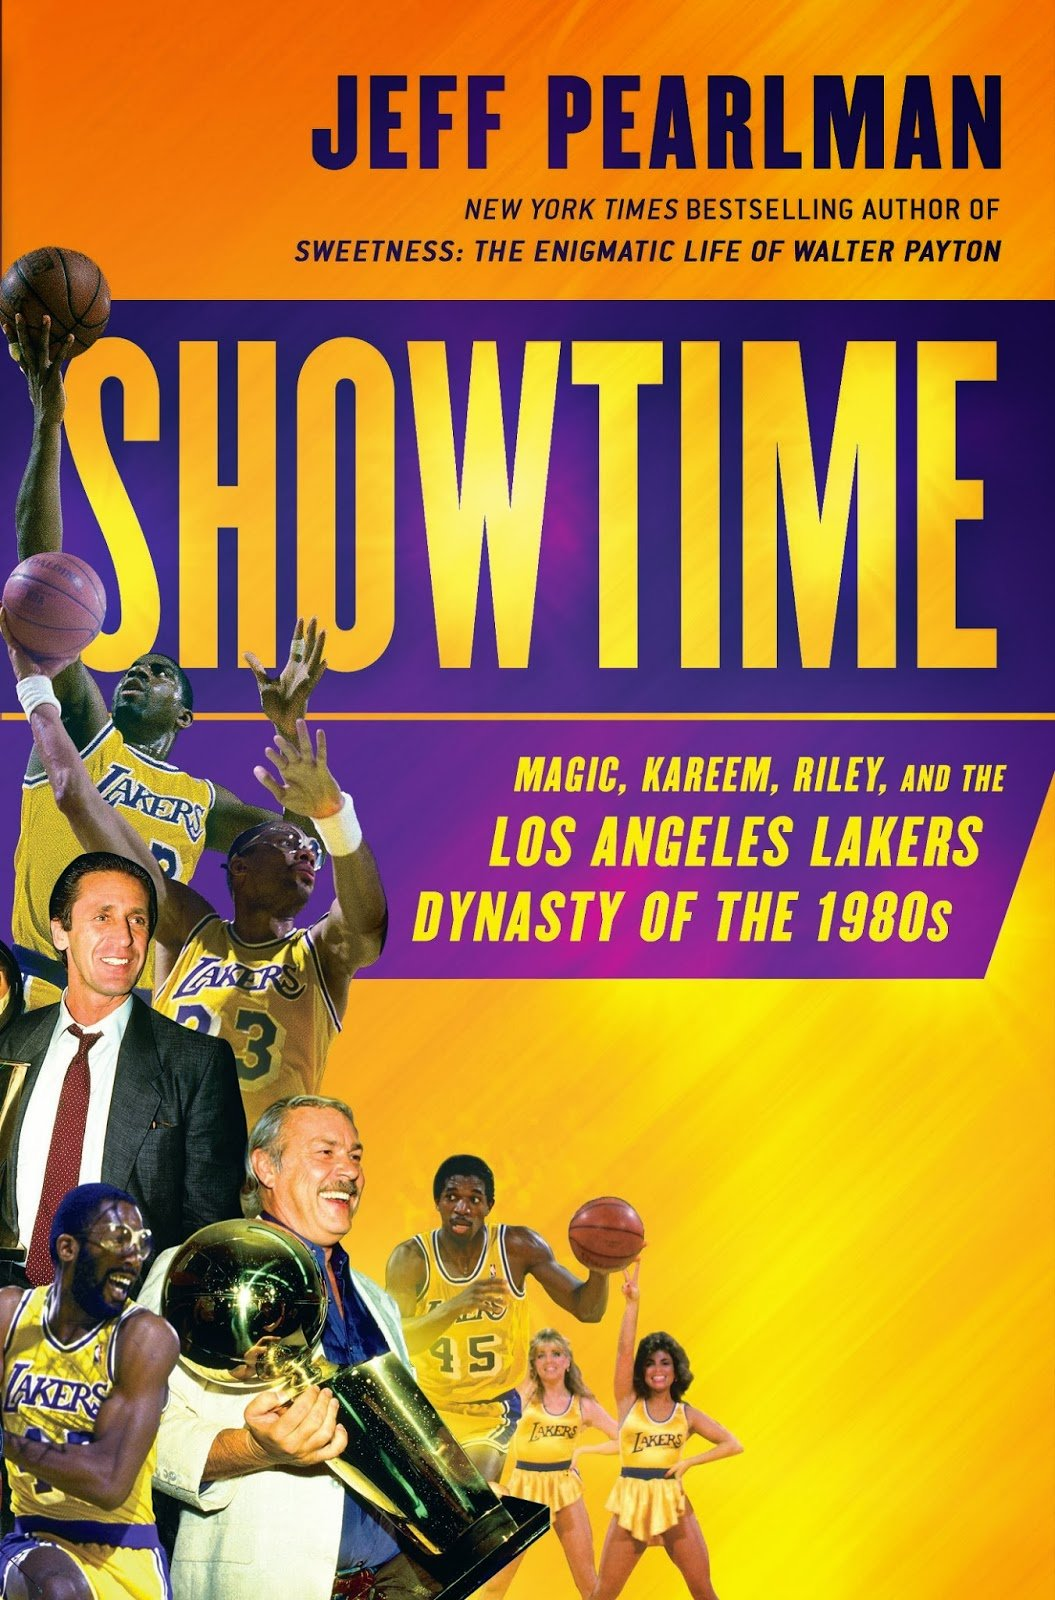 LA Lakers Dynasty of the 1980s with Jeff Pearlman